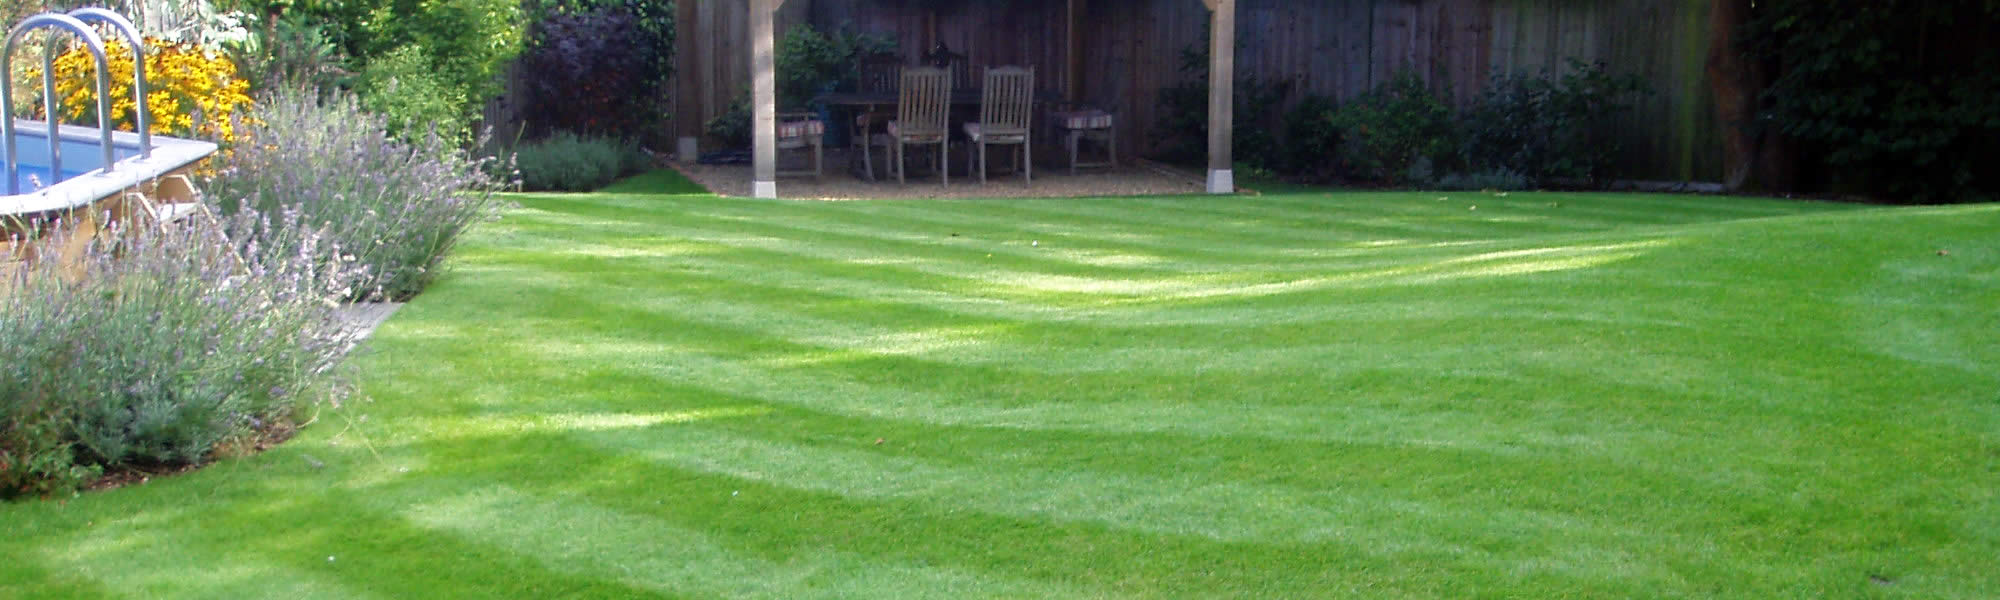 Lawn Care and Landscape Tennessee